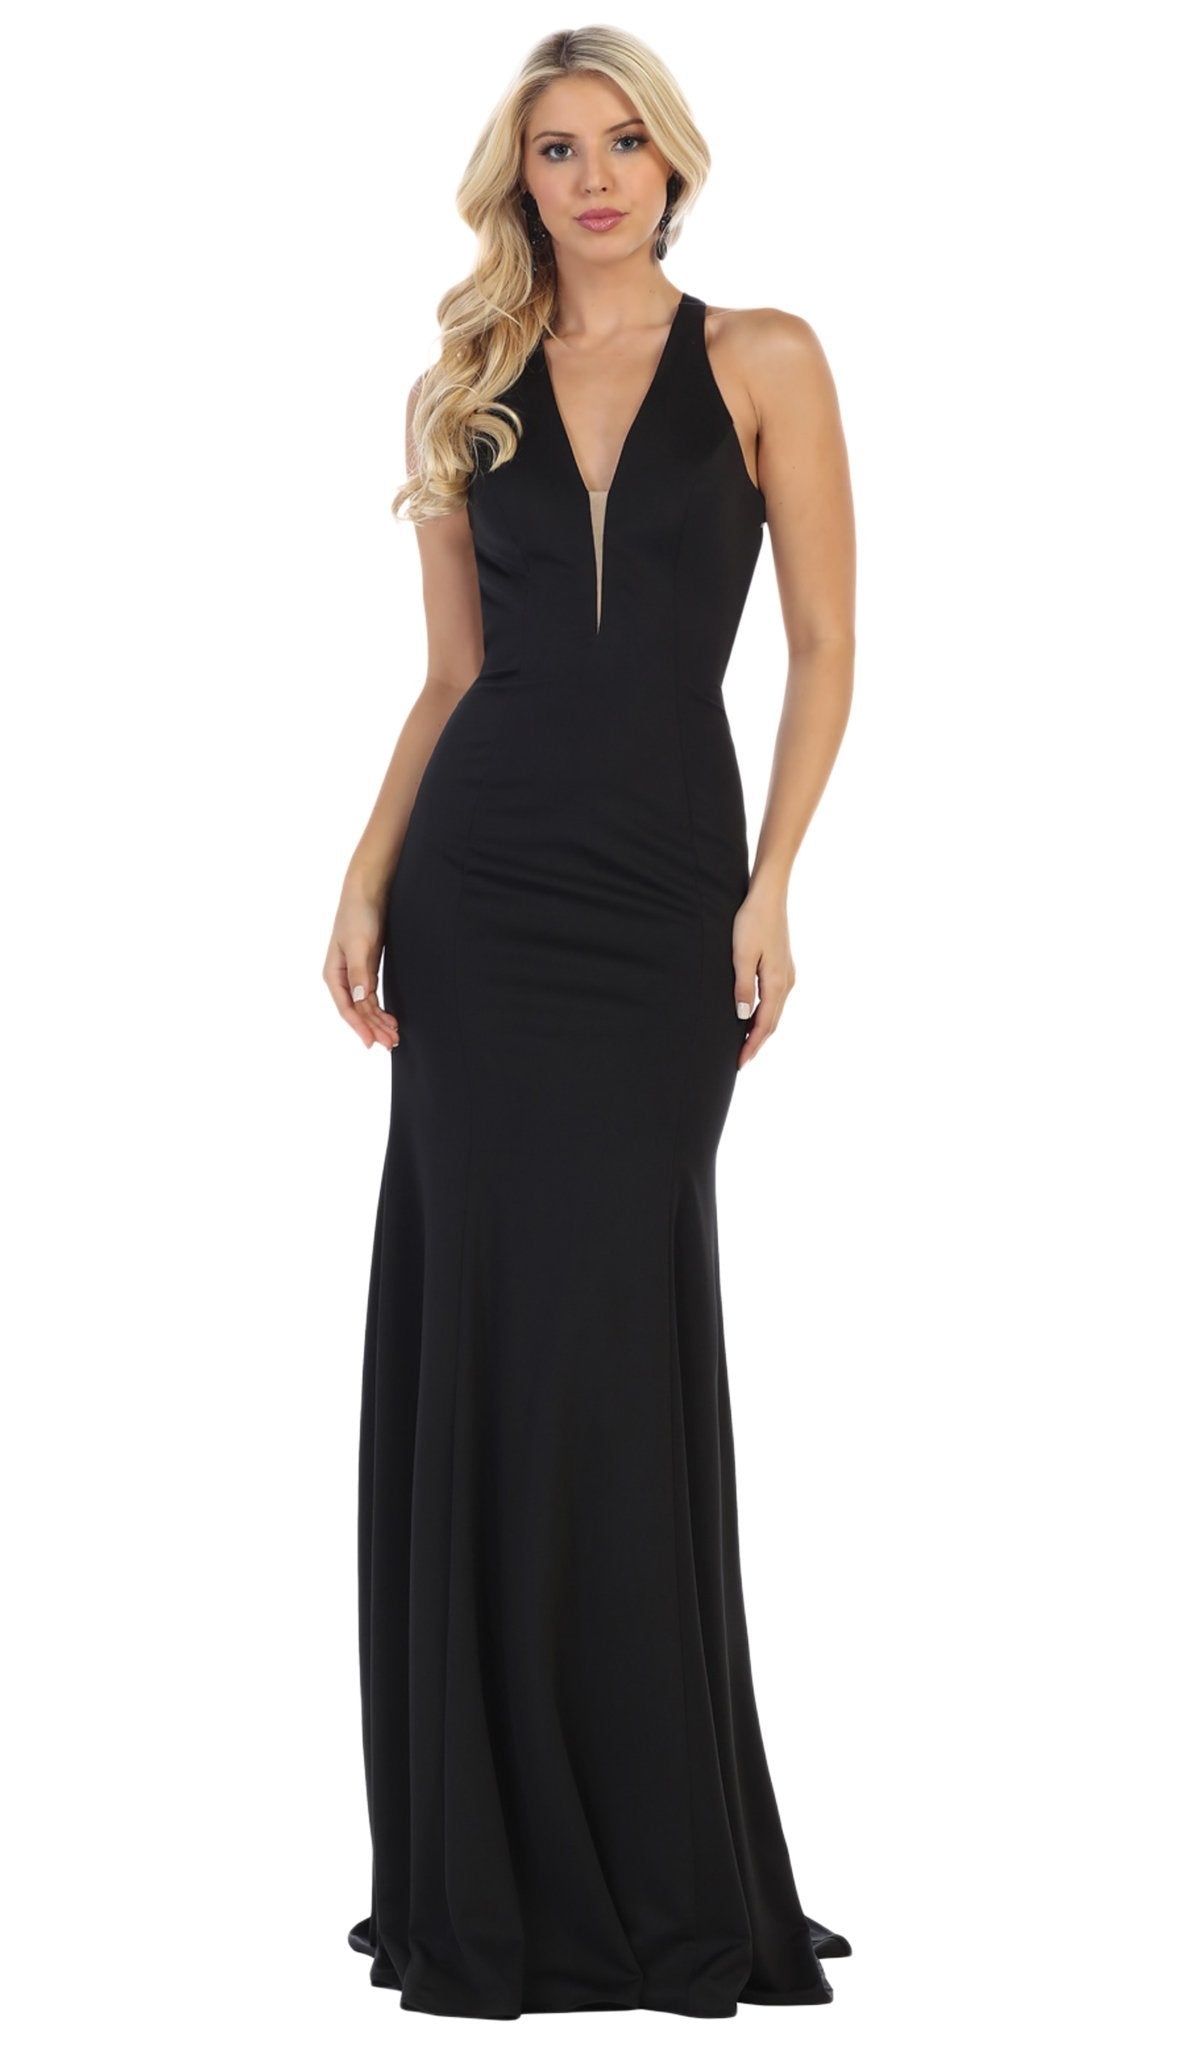 May Queen - Plunging Crisscross Strapped Back Mermaid Gown MQ1636 In Black